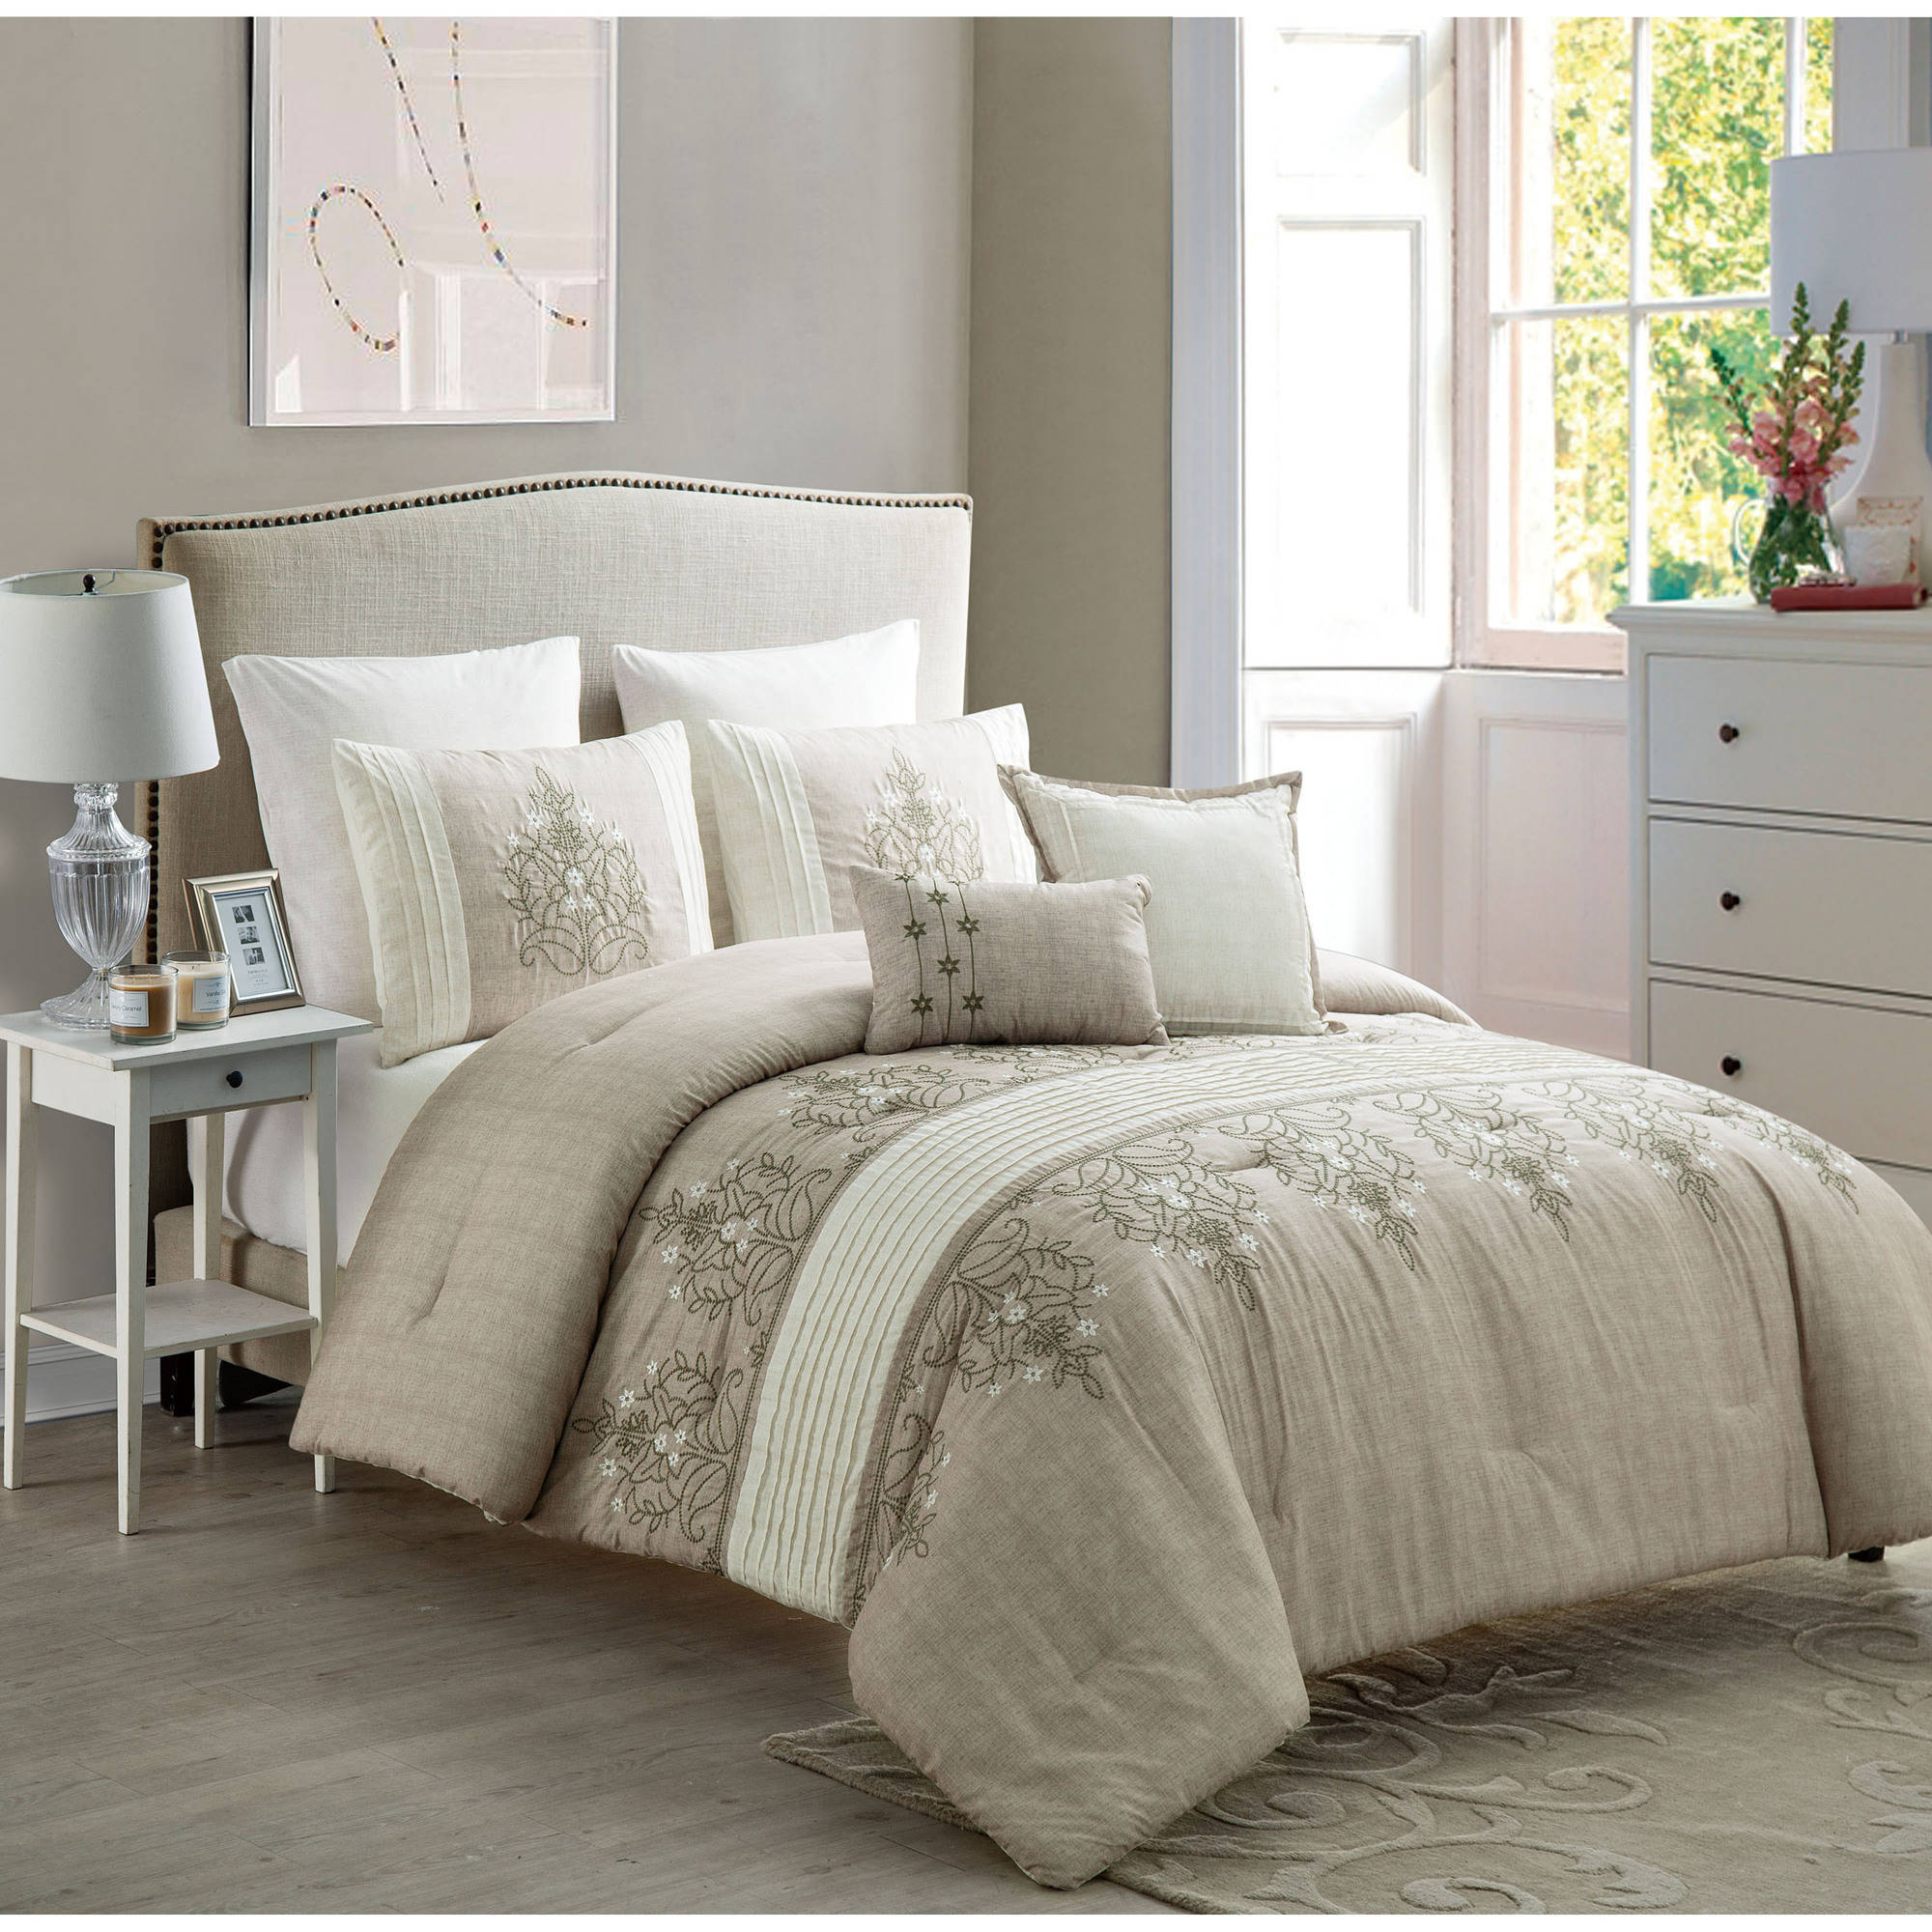 VCNY Grace 7-Piece Multi-Colored Floral Embroidered Bedding Comforter Set with Euro Shams, Multiple Colors Available